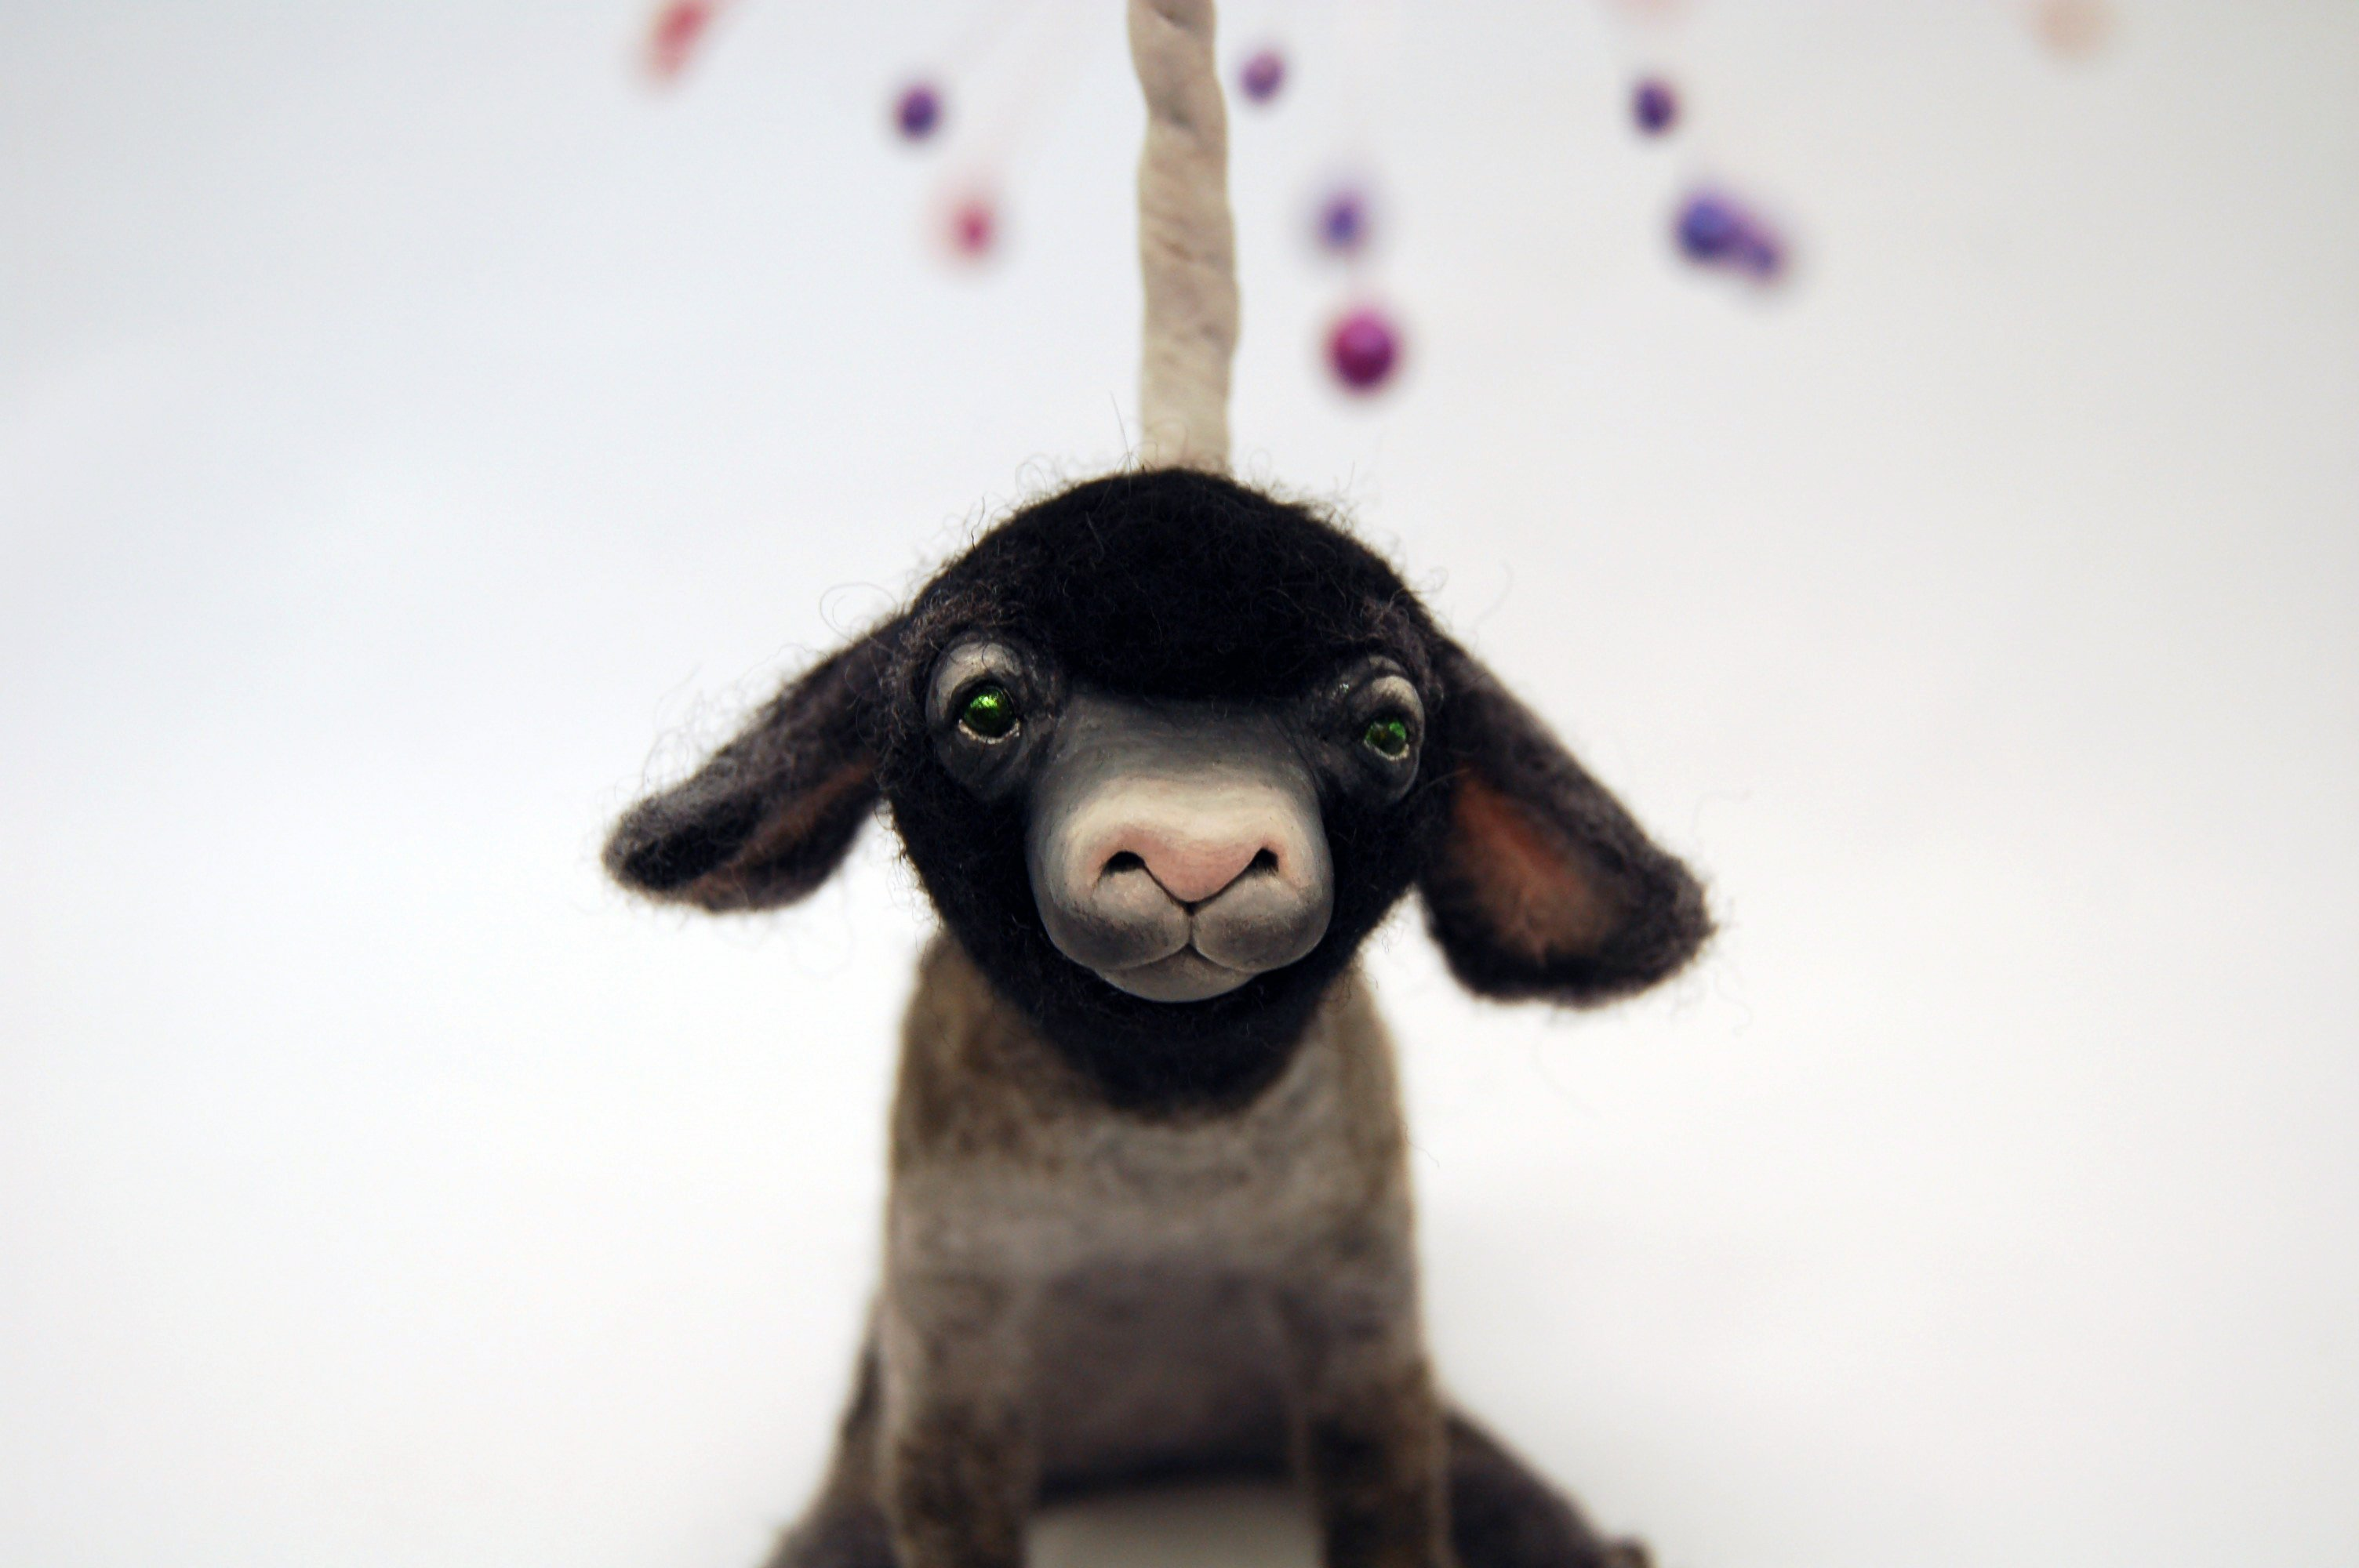 Black spotted felt and clay lamb - karina kalvaitis - all rights reserved